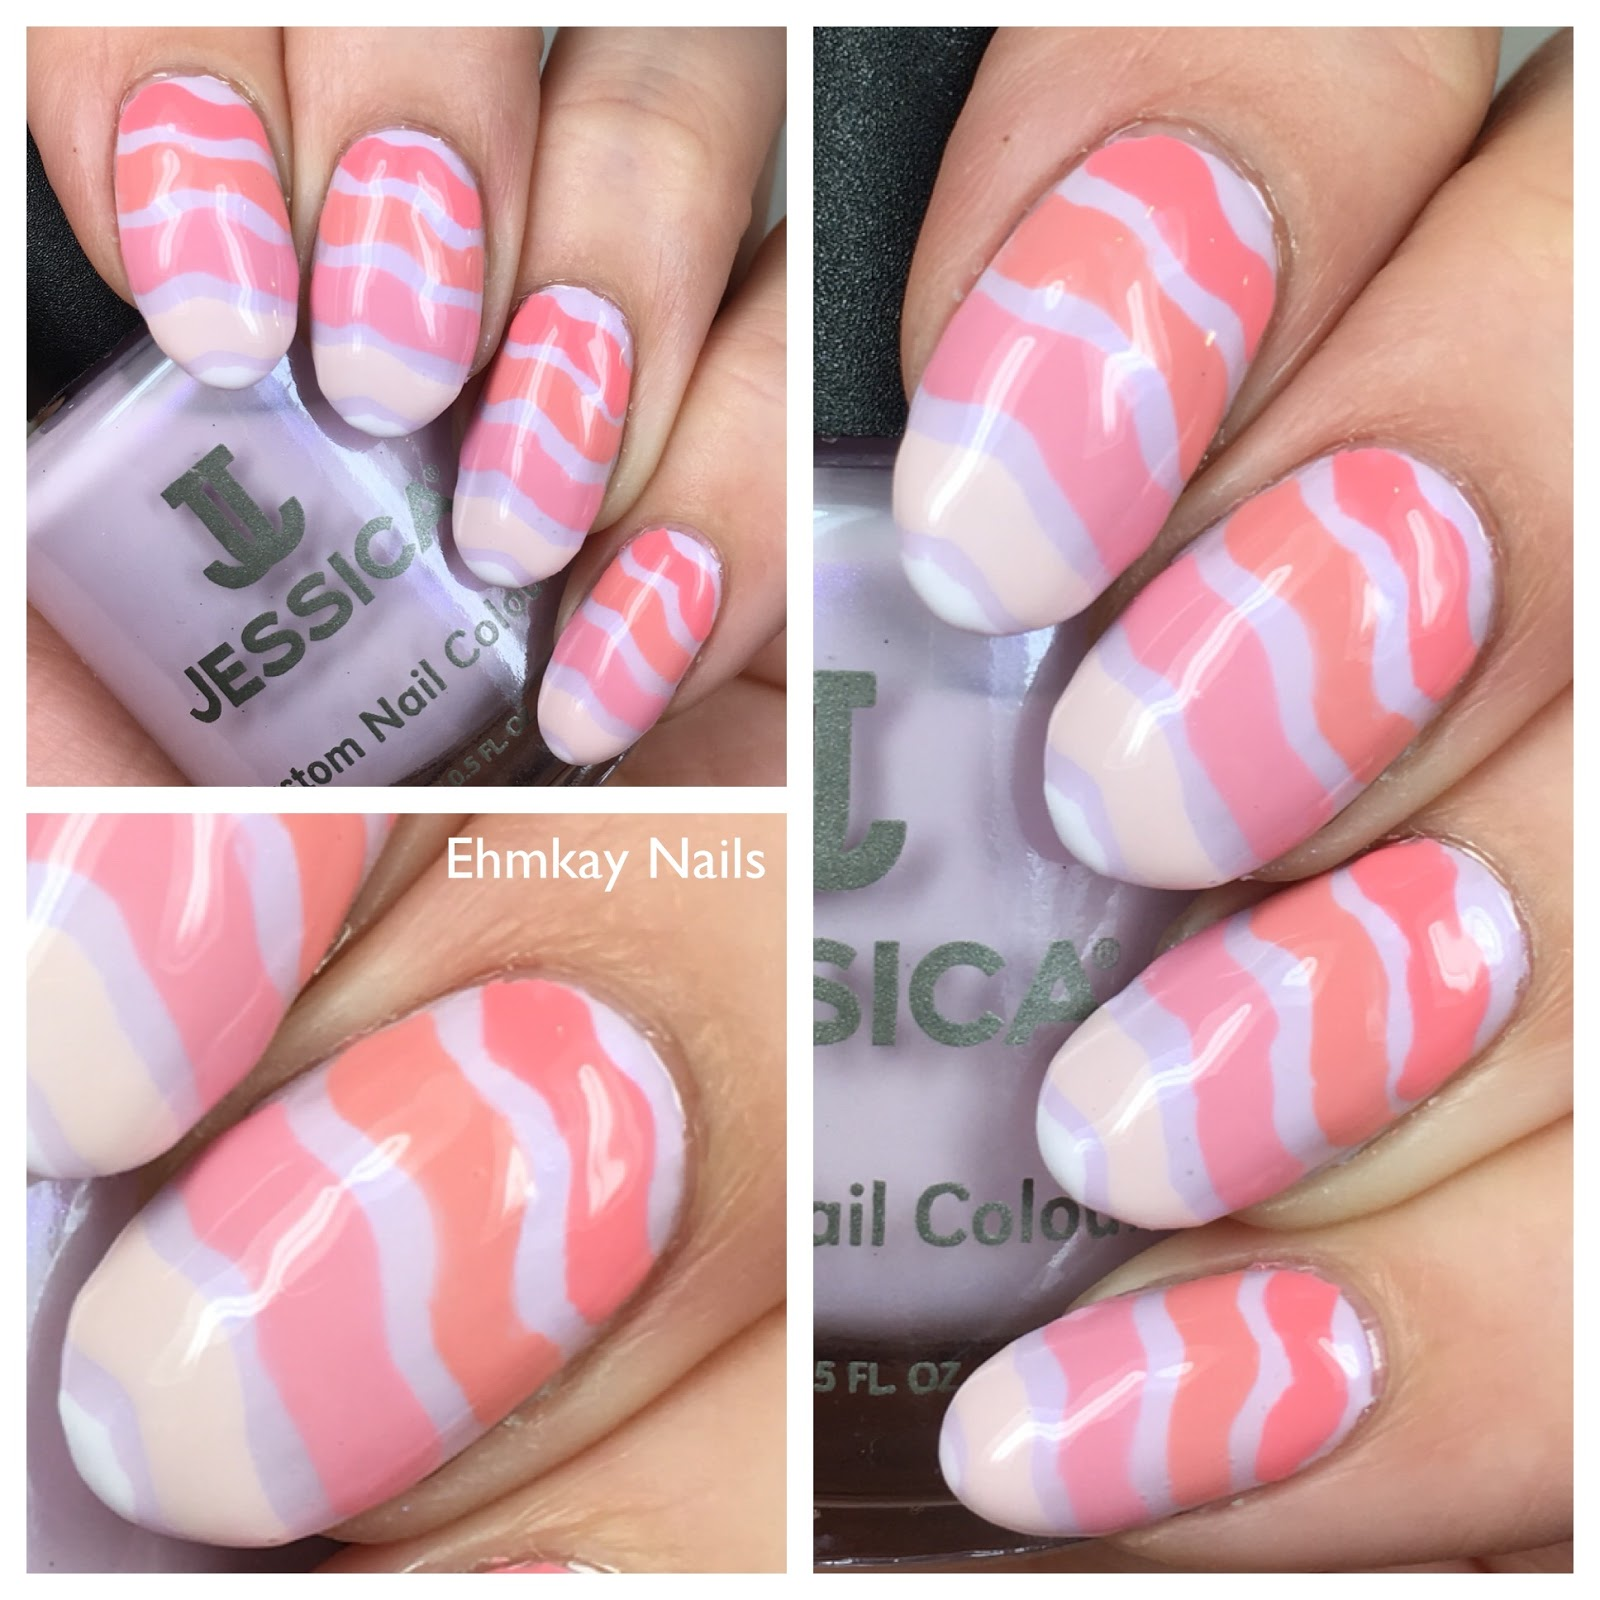 Ehmkay Nails Jessica La Vie En Rose Ombre Waves Nail Art